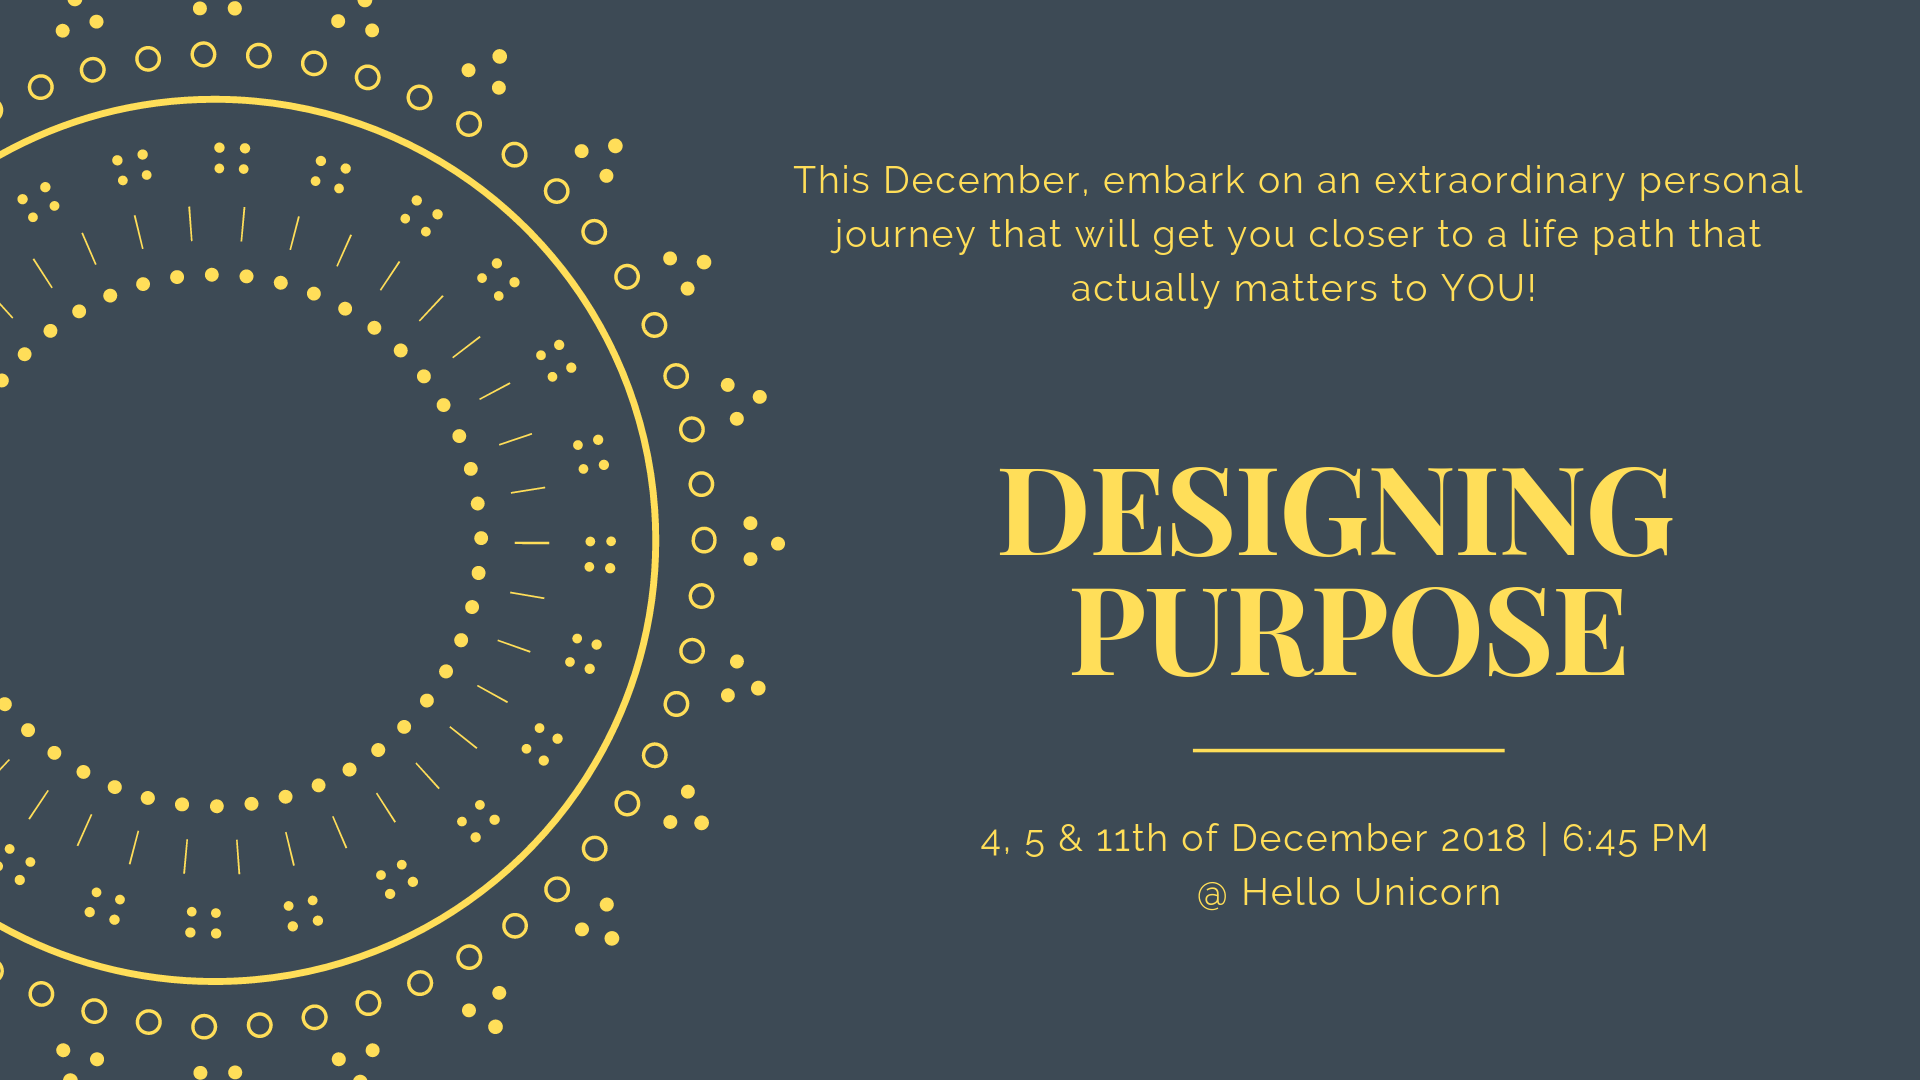 Designing Purpose